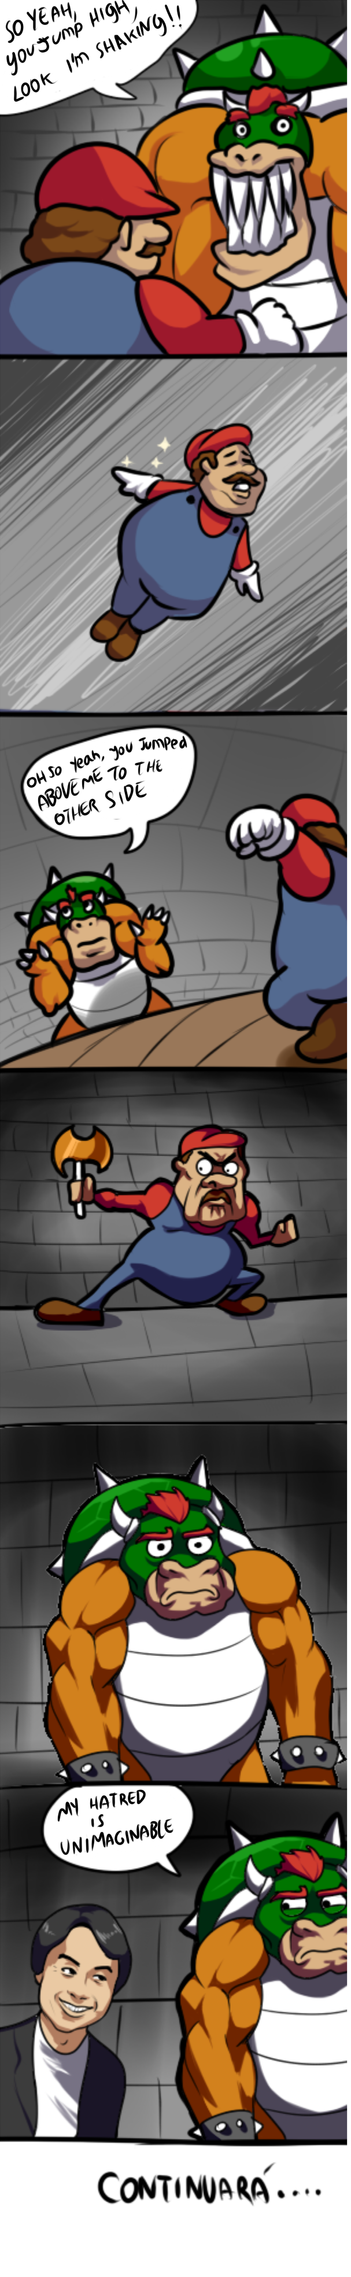 mario's adventures by RakinTor